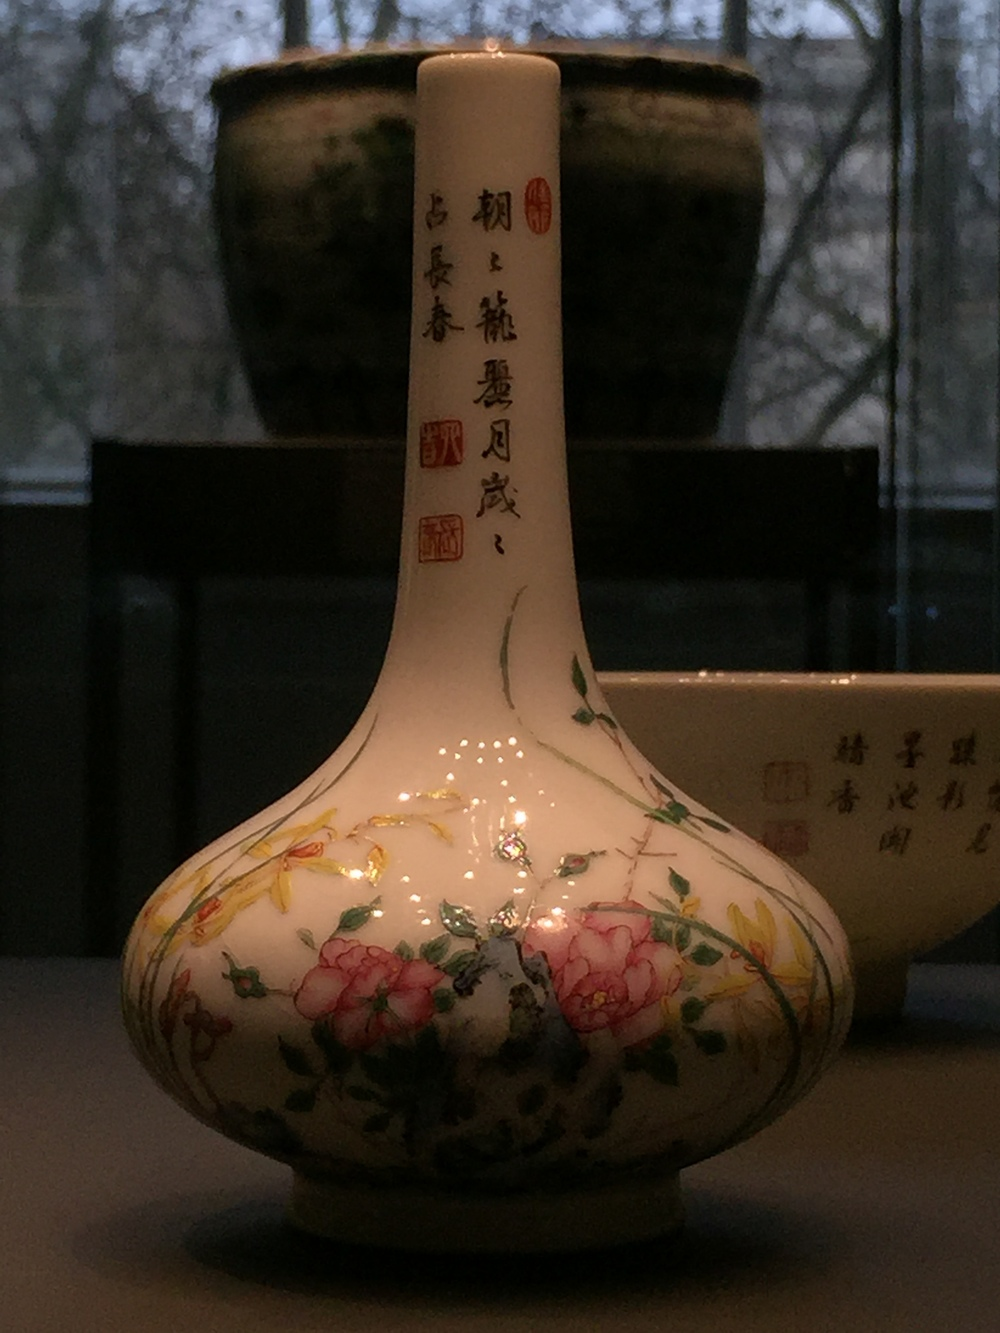 falangcai bottle with flowers   1736-95 Chinese porcelain at the British Museum Sir Percival David Collection